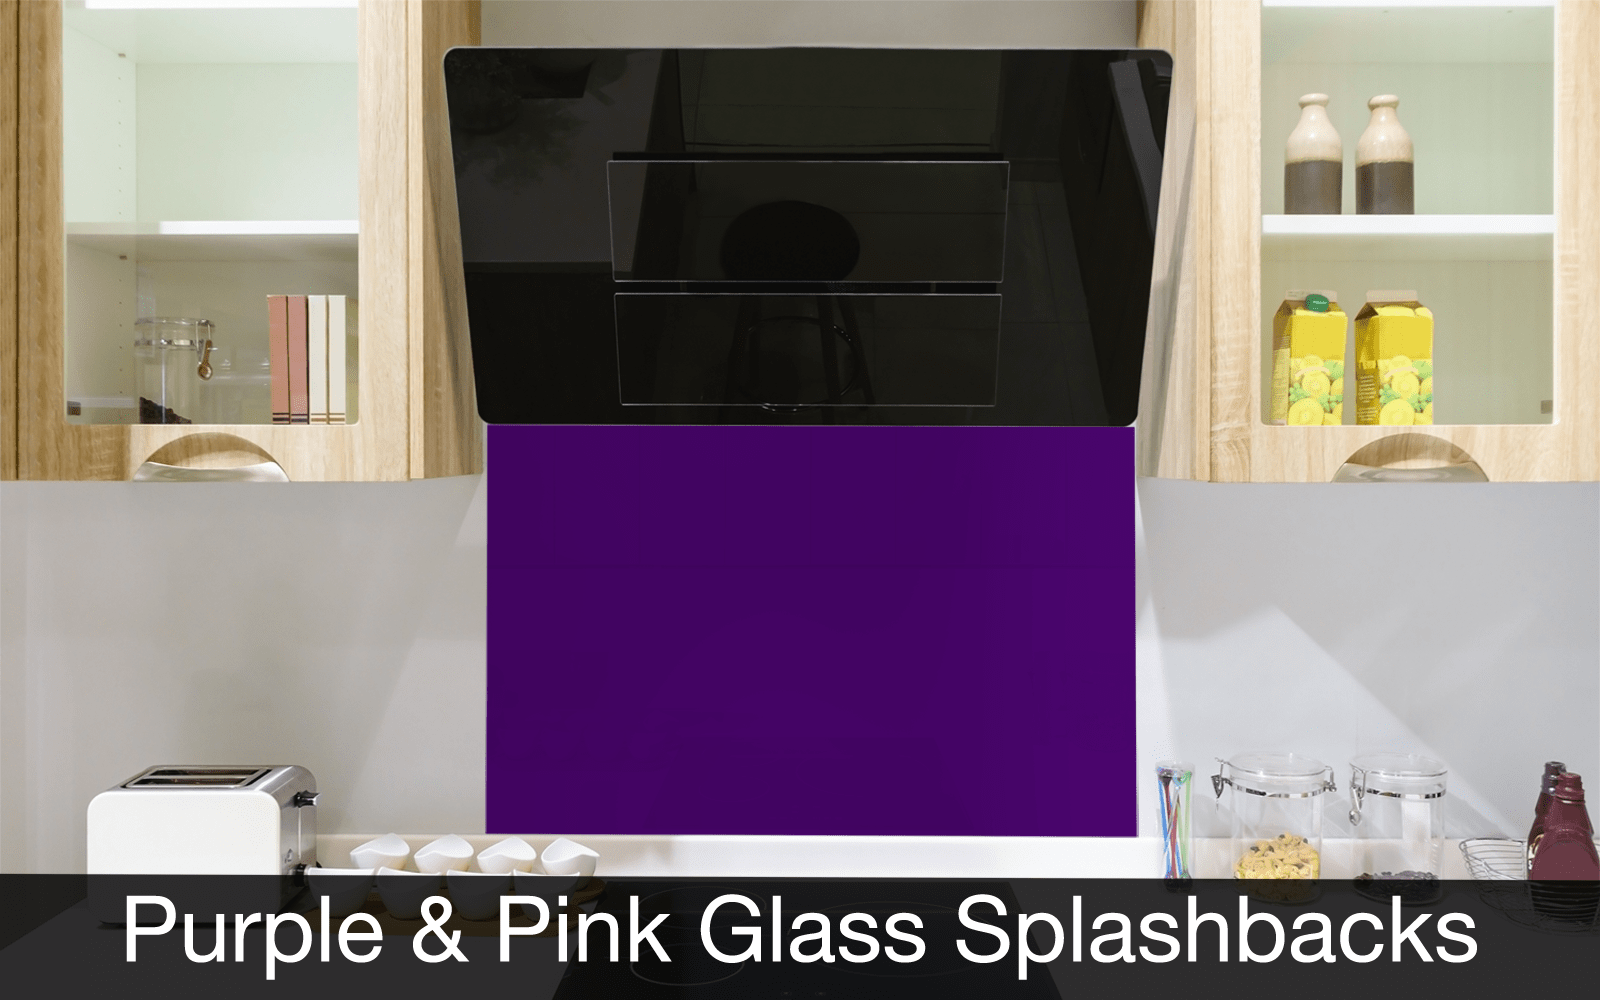 Purple and Pink Glass Splashbacks